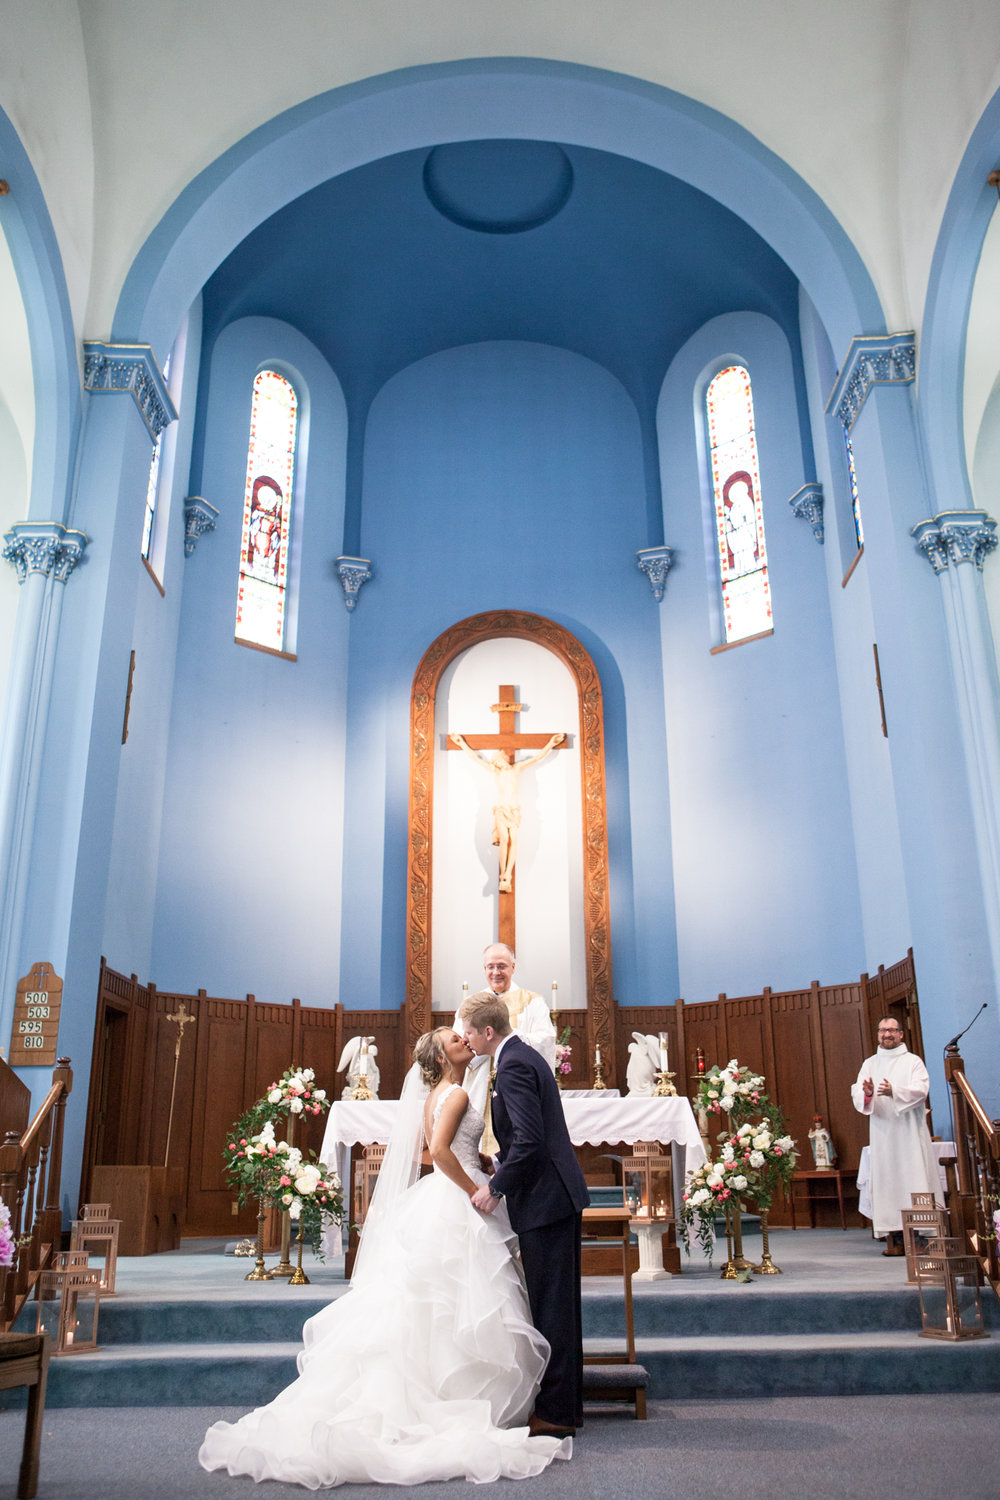 St. Patrick Catholic Church Minonk Packard Plaza Peoria Bloomington Normal Illinois Wedding Photographer Photographers Peoria Riverfront-23.jpg